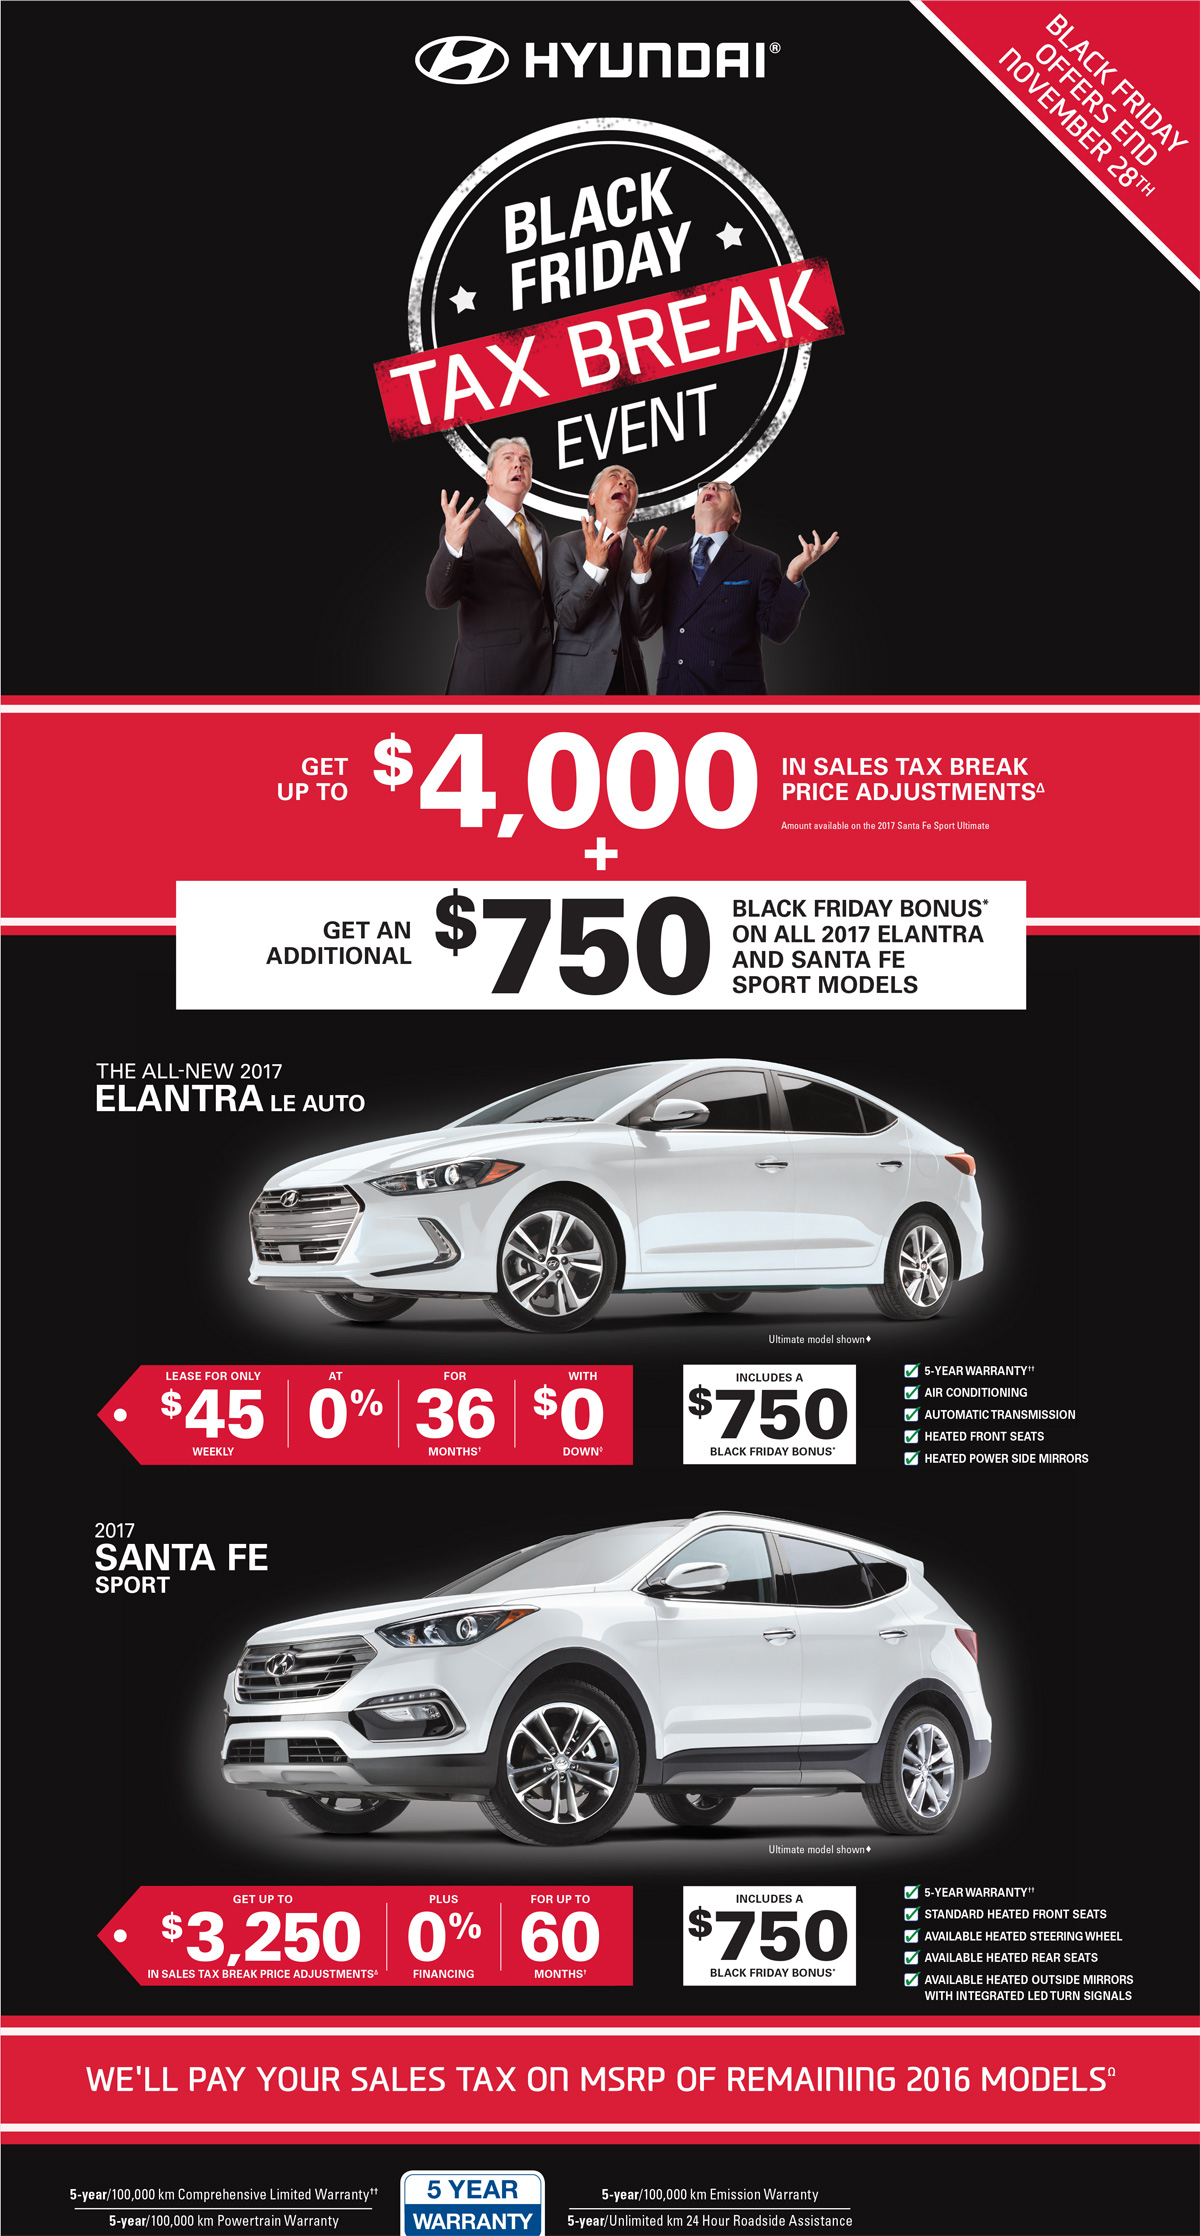 Get Up To 4000 In Price Adjustments And An Addition 750 Bonus On Brand New 2017 Hyundai Cars Suvs London During The Black Friday Tax Break Event